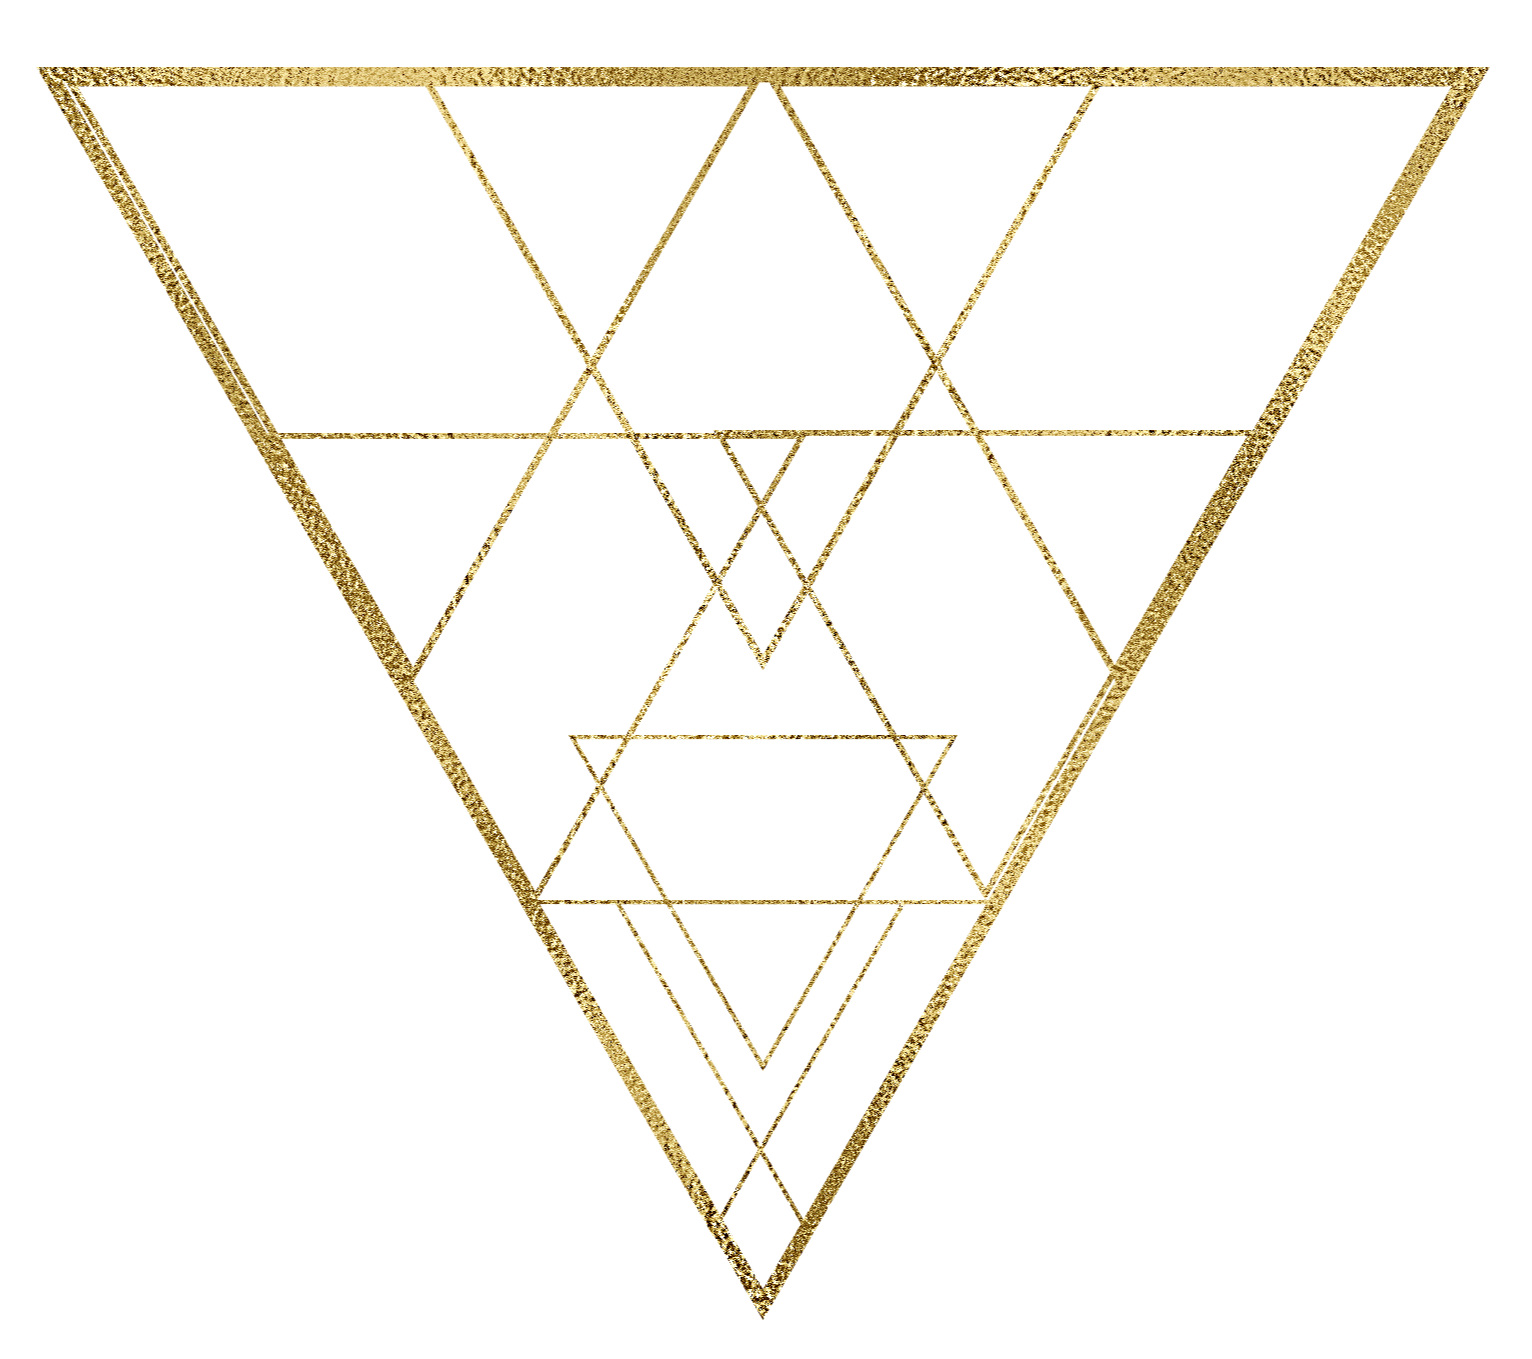 kisspng-golden-triangle-geometry-golden-triangle-5a898f6fa27860.0207622715189645916655.jpg